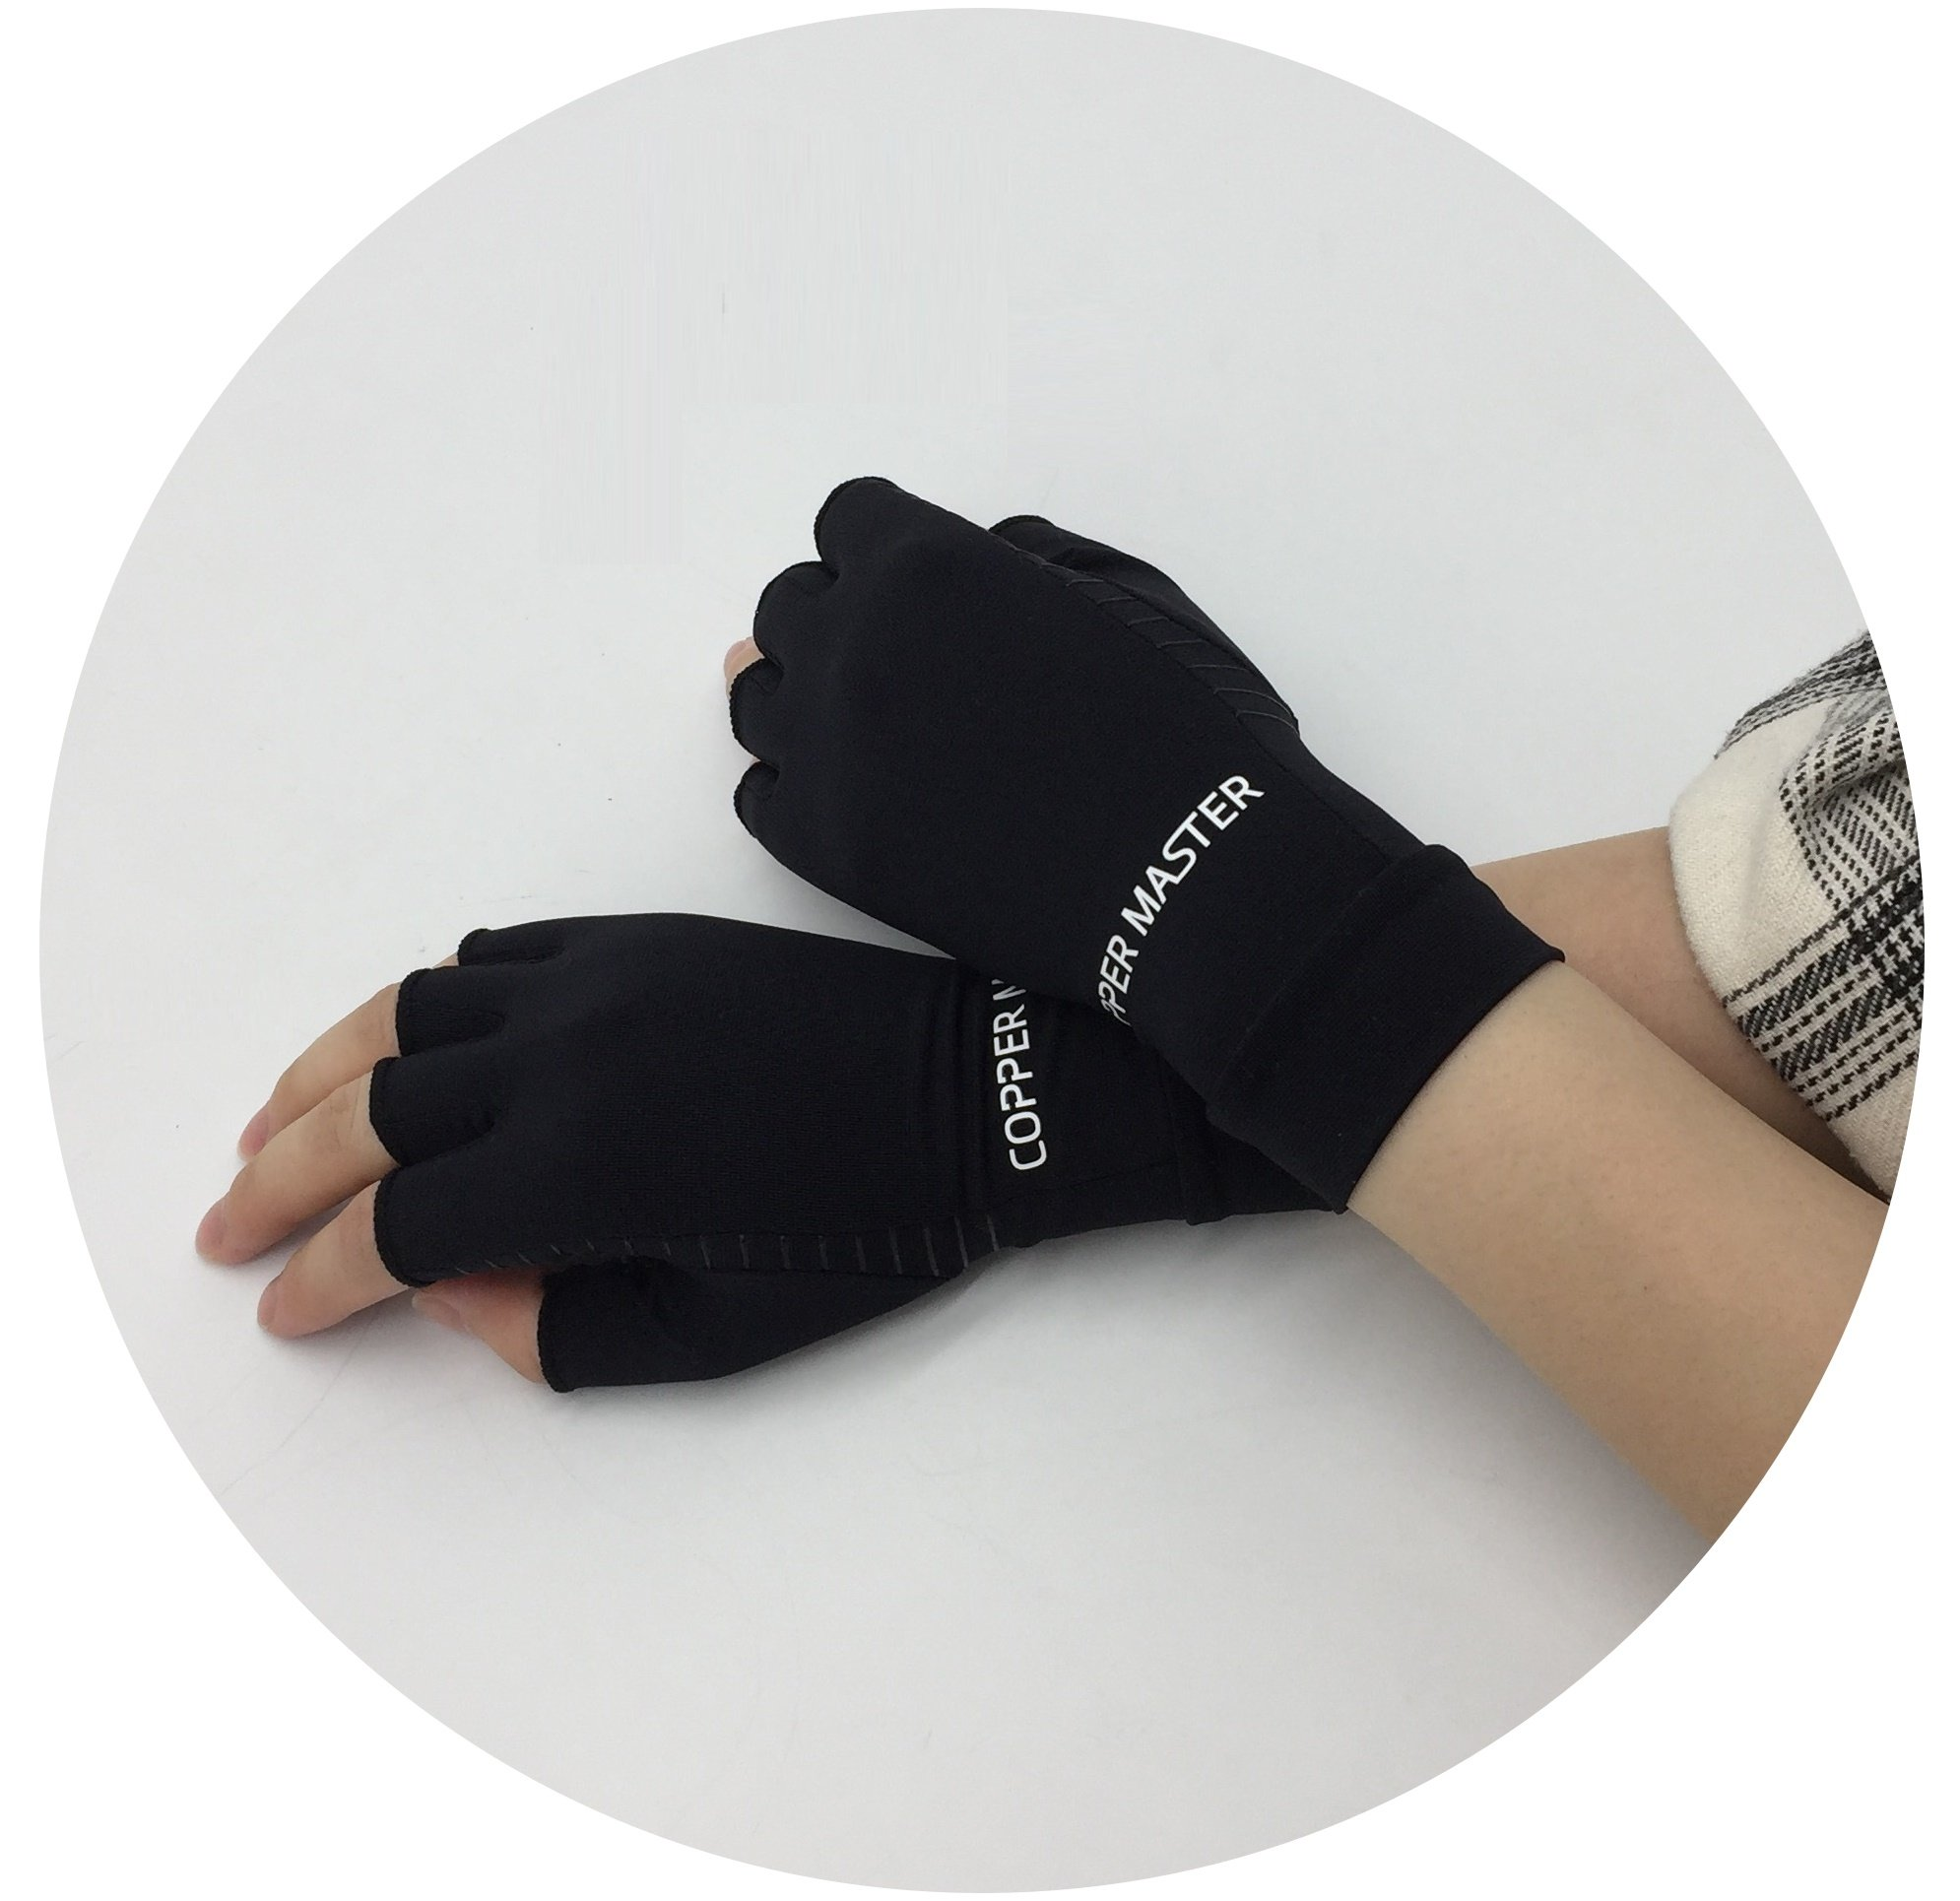 Arthritis Gloves Women- Copper Gloves For Men- Compression Gloves Recovery & Relieve For Arthritis, RSI, Carpal Tunnel, Swollen Hands, Tendonitis, Everyday Support & More- Fingerless Gloves/ Black/ L by Highcamp (Image #9)